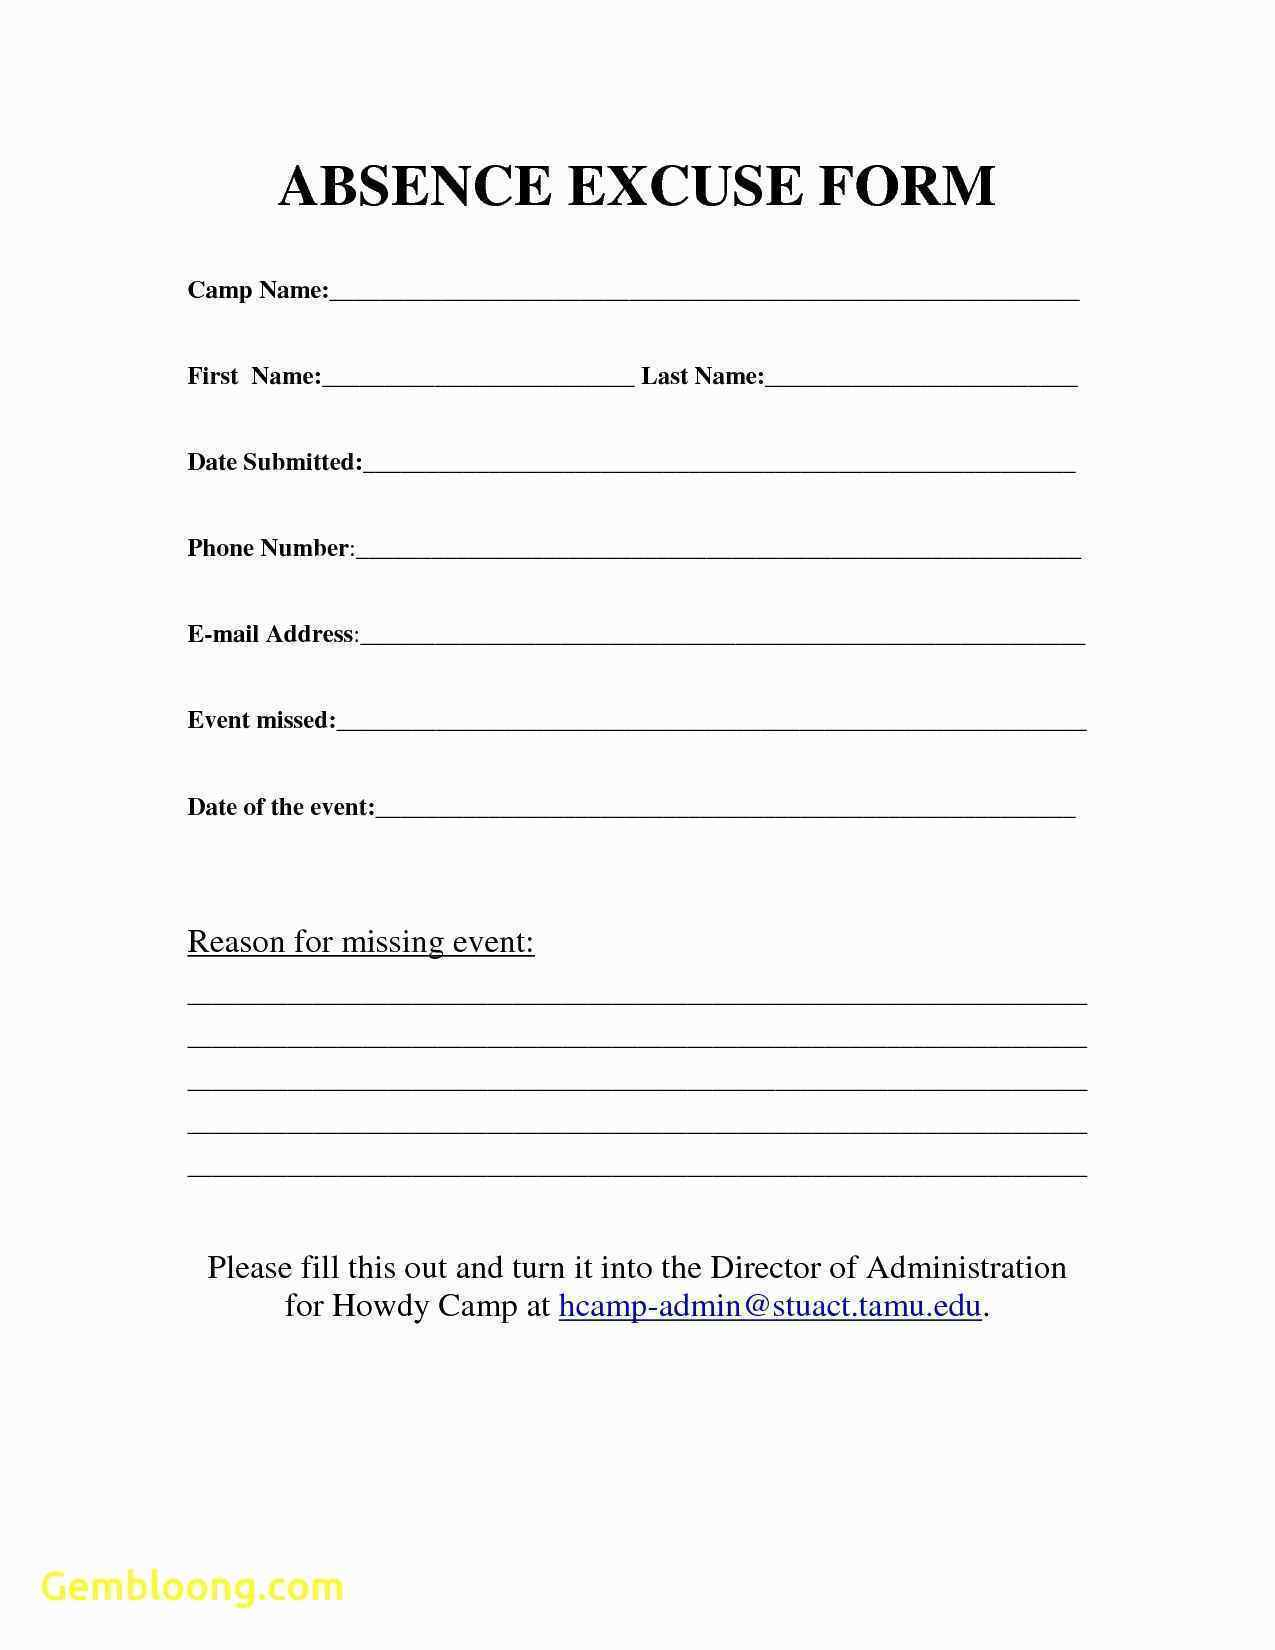 Free Fake Doctors Excuse Template Best Of Free Fake Doctors Excuse - Free Printable Doctors Excuse